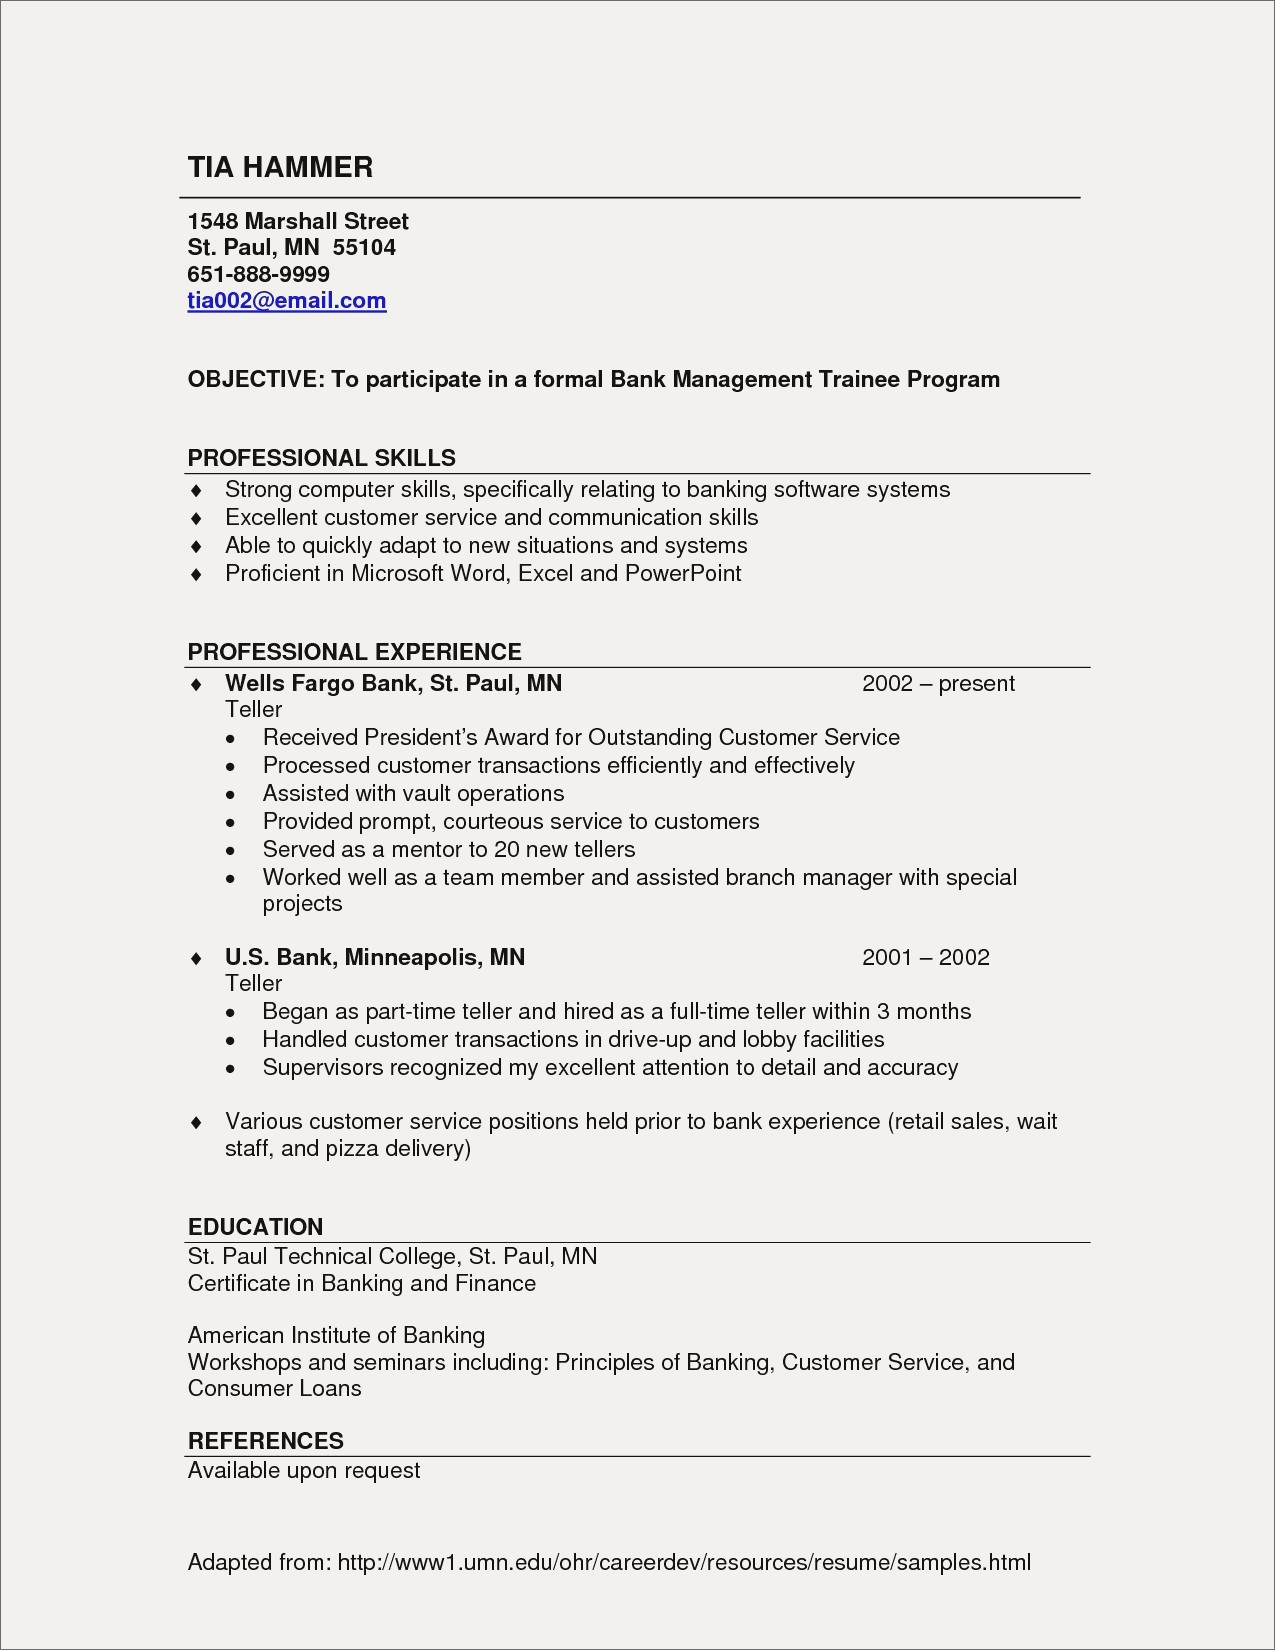 Professional Resume Sample - Professional Reference List Template Customer Service Resume Sample